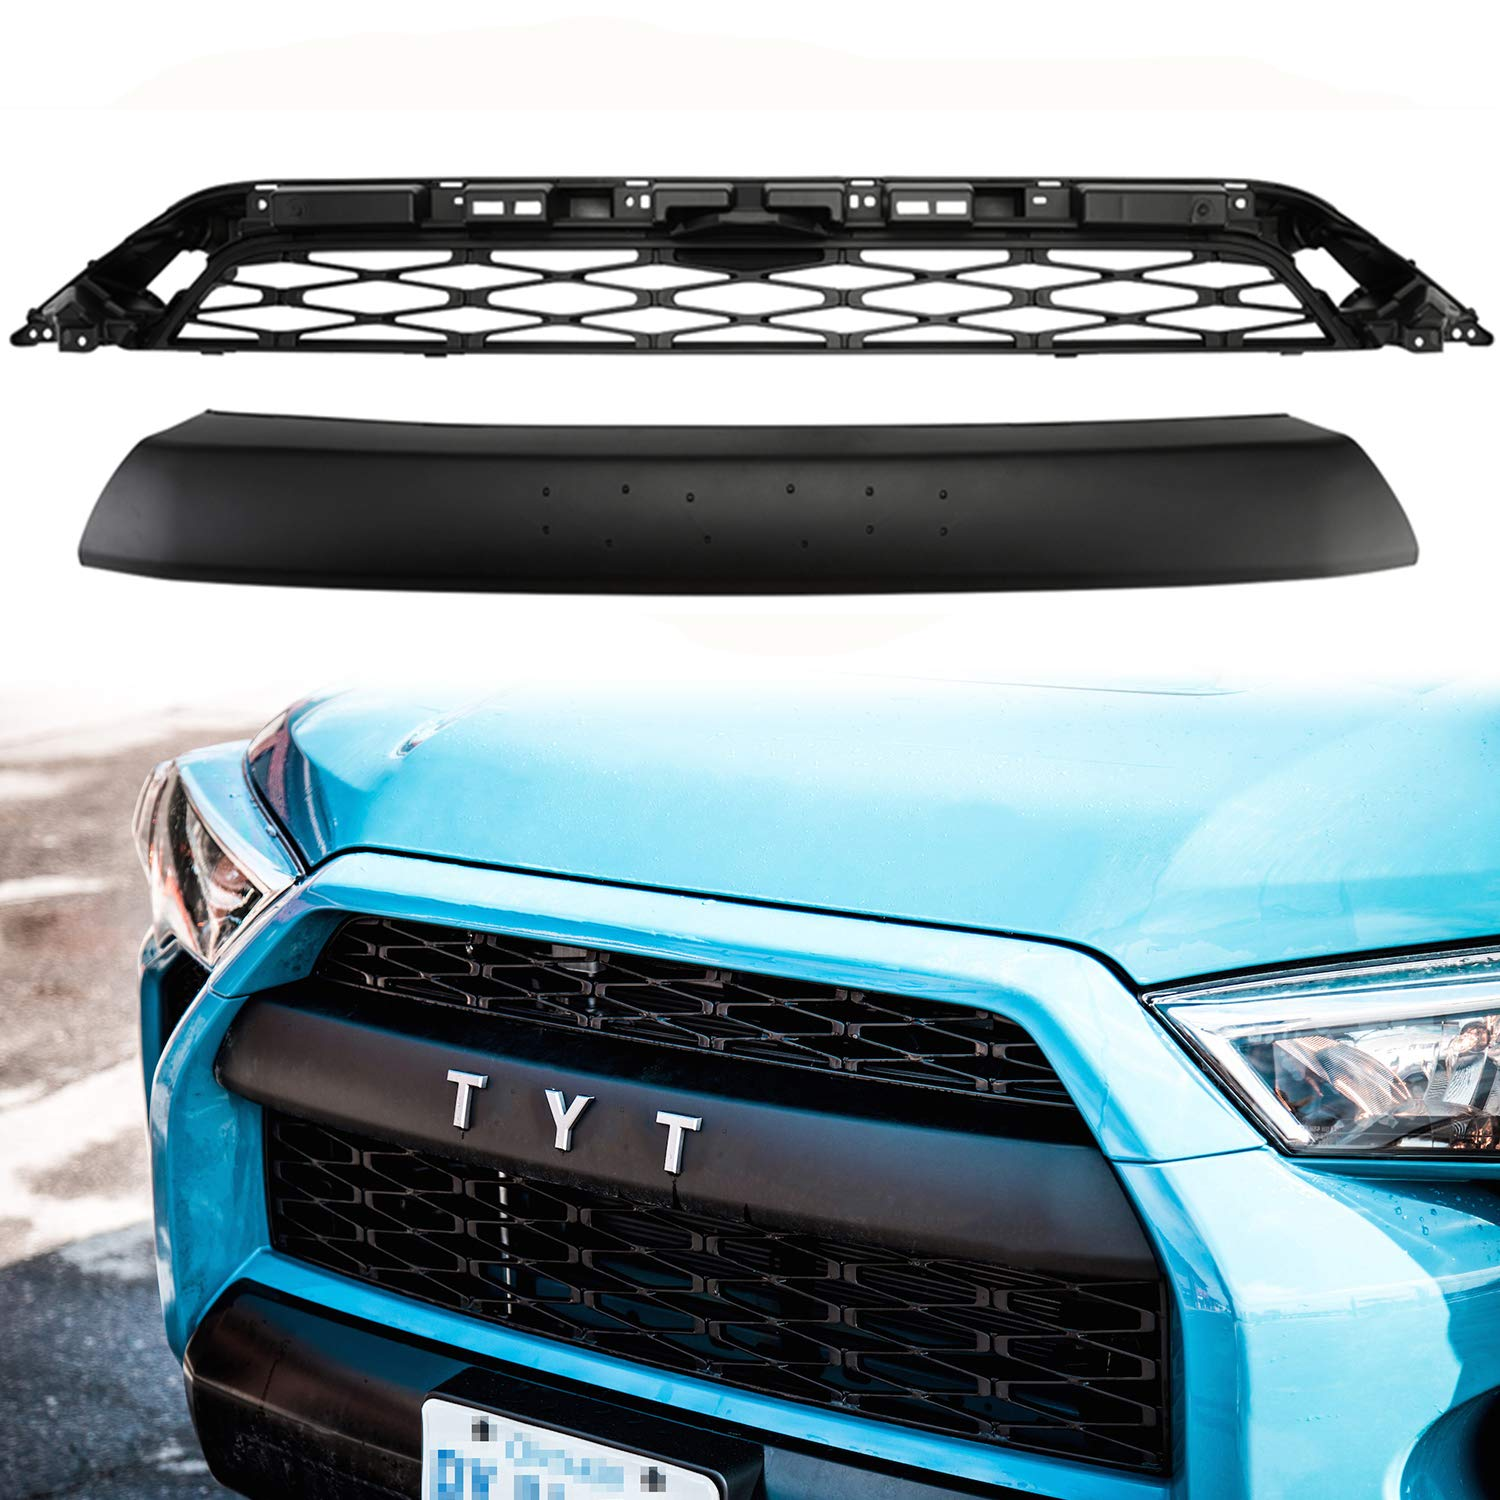 2 Parts Replacements Front Grille for Toyota 4Runner 2014-2019 SR5 Trail TRD PRO